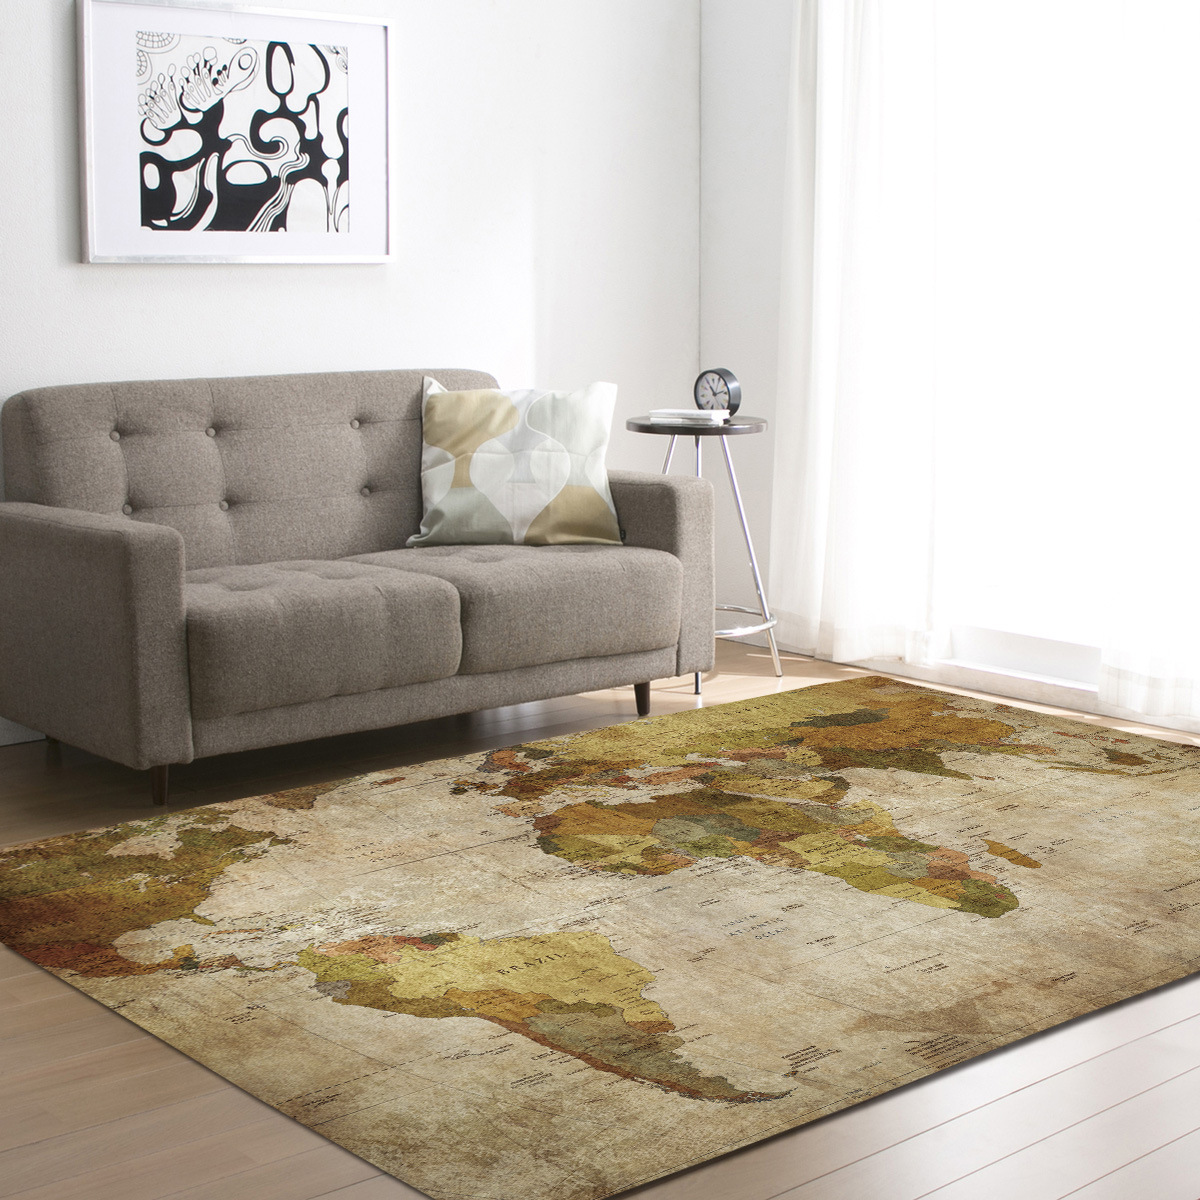 RULDGEE 1PCS Polyester Map Pattern Carpet For Living Room Kitchen Mat Bedroom Carpet Floor Door Mat Decoration Carpet